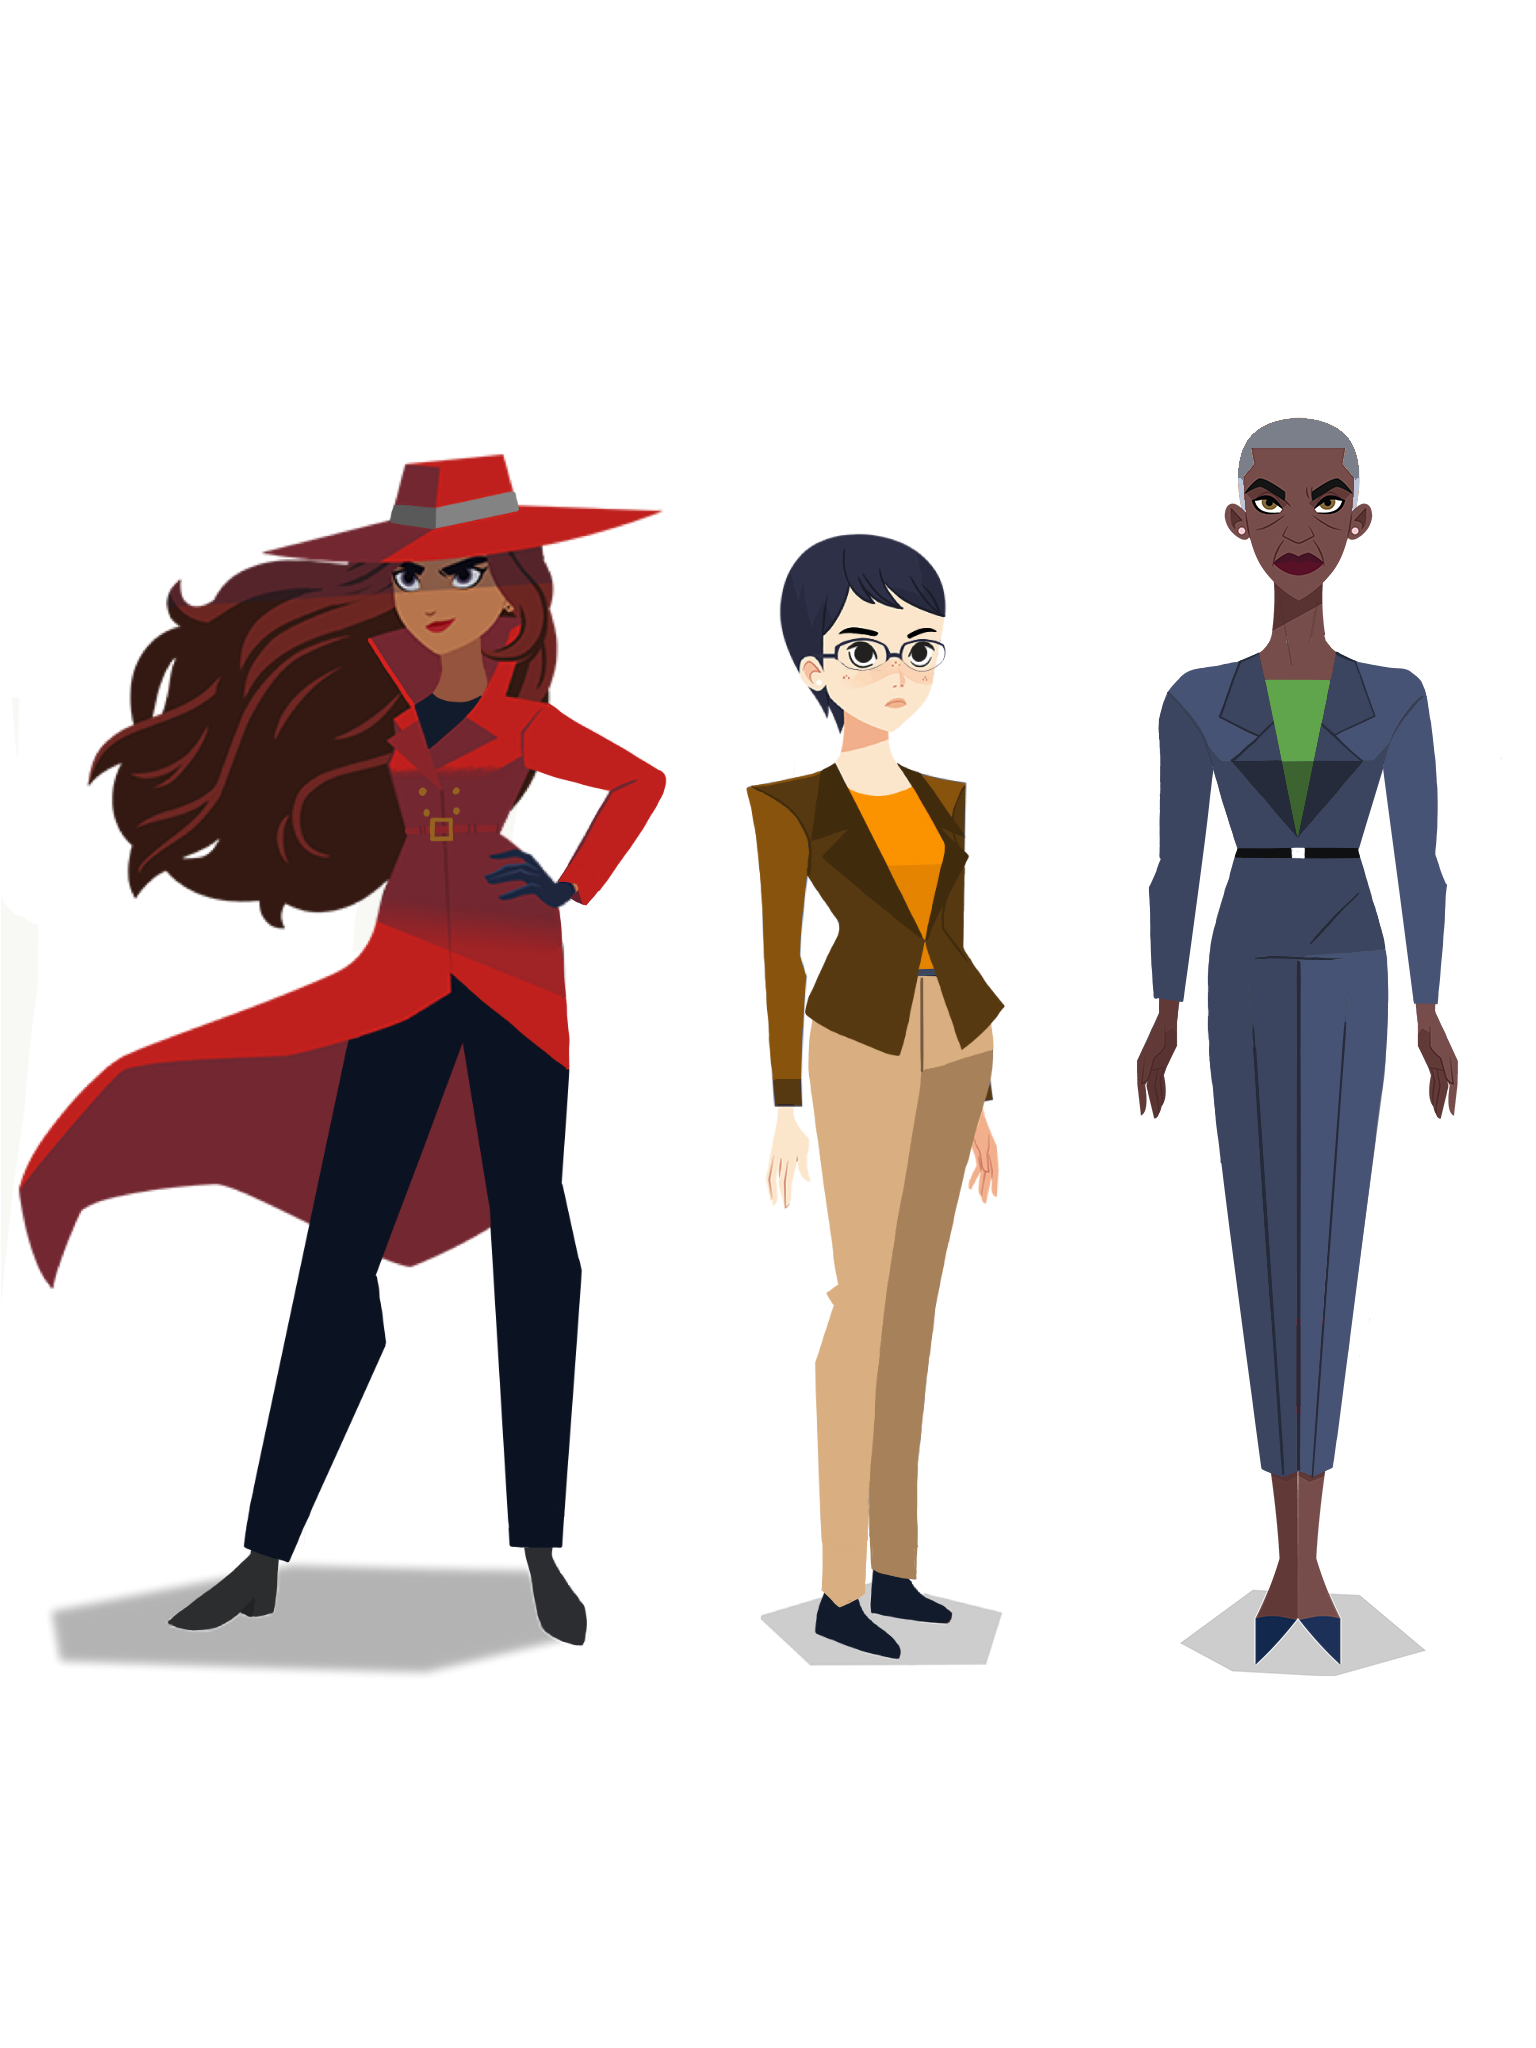 Pin By Claudine Johnson On Where In The World Is Carmen Sandiego Carmen Sandiego My Little Pony Characters Carmen Sandiago